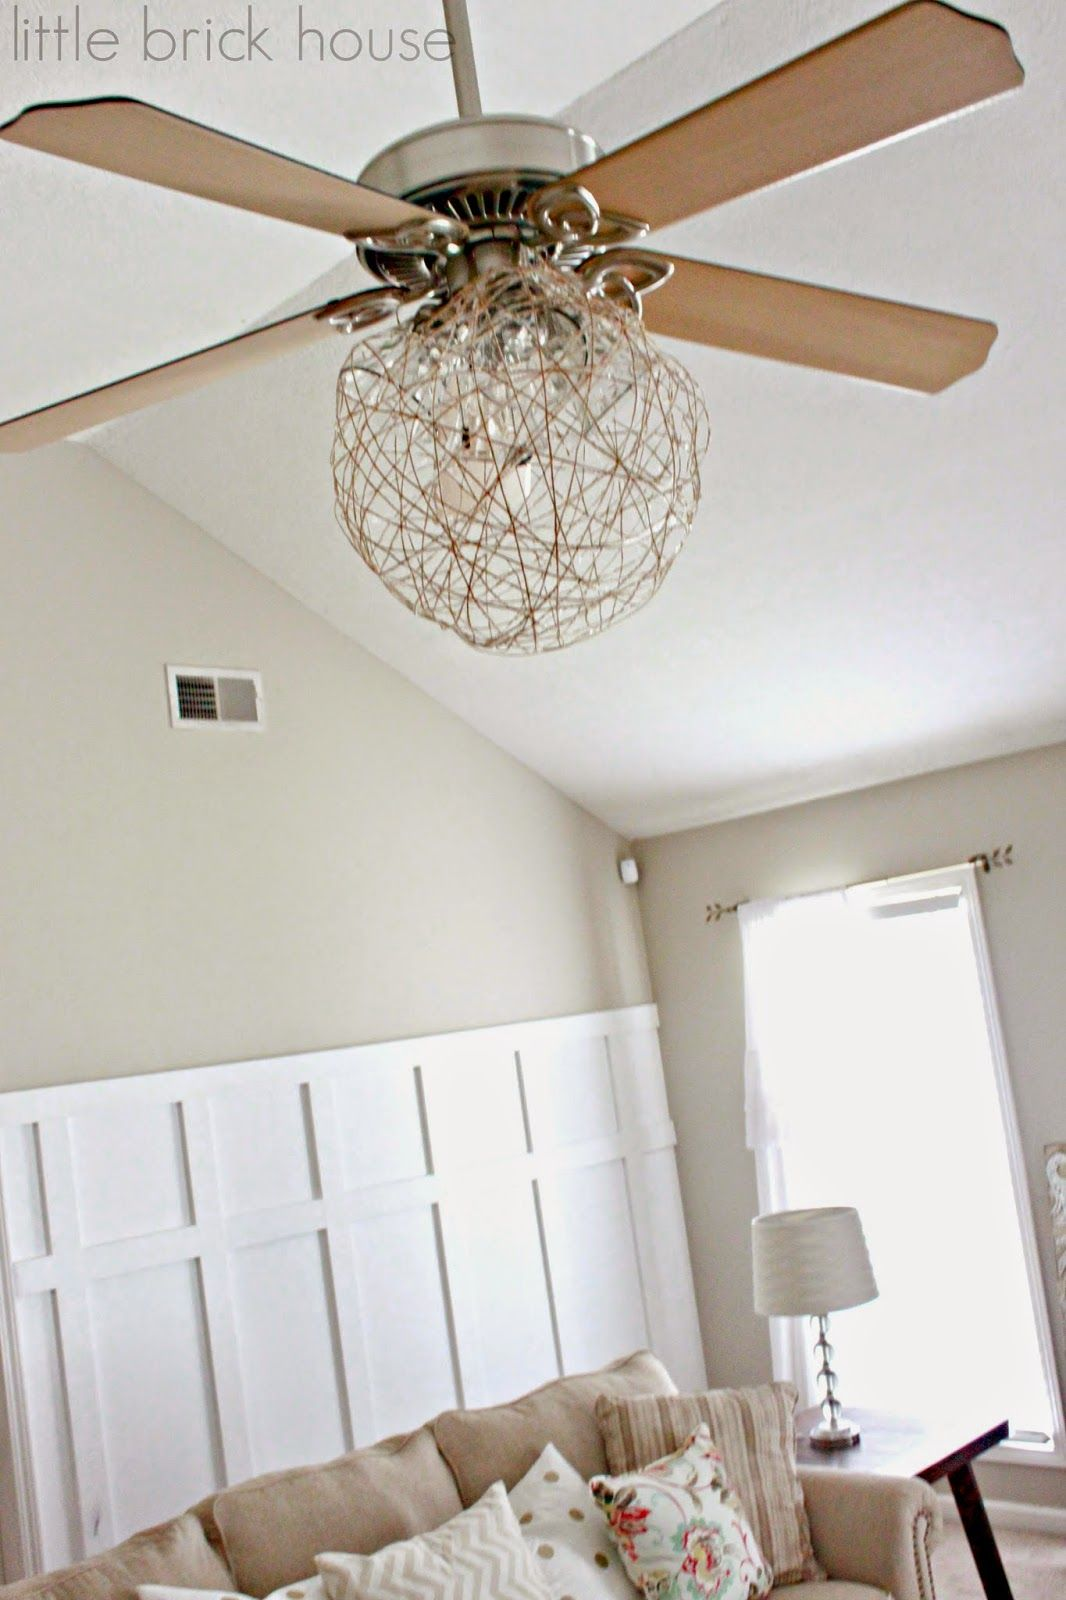 Bedroom Fan Lights Ceiling Fan Light Makeover Little Brick House